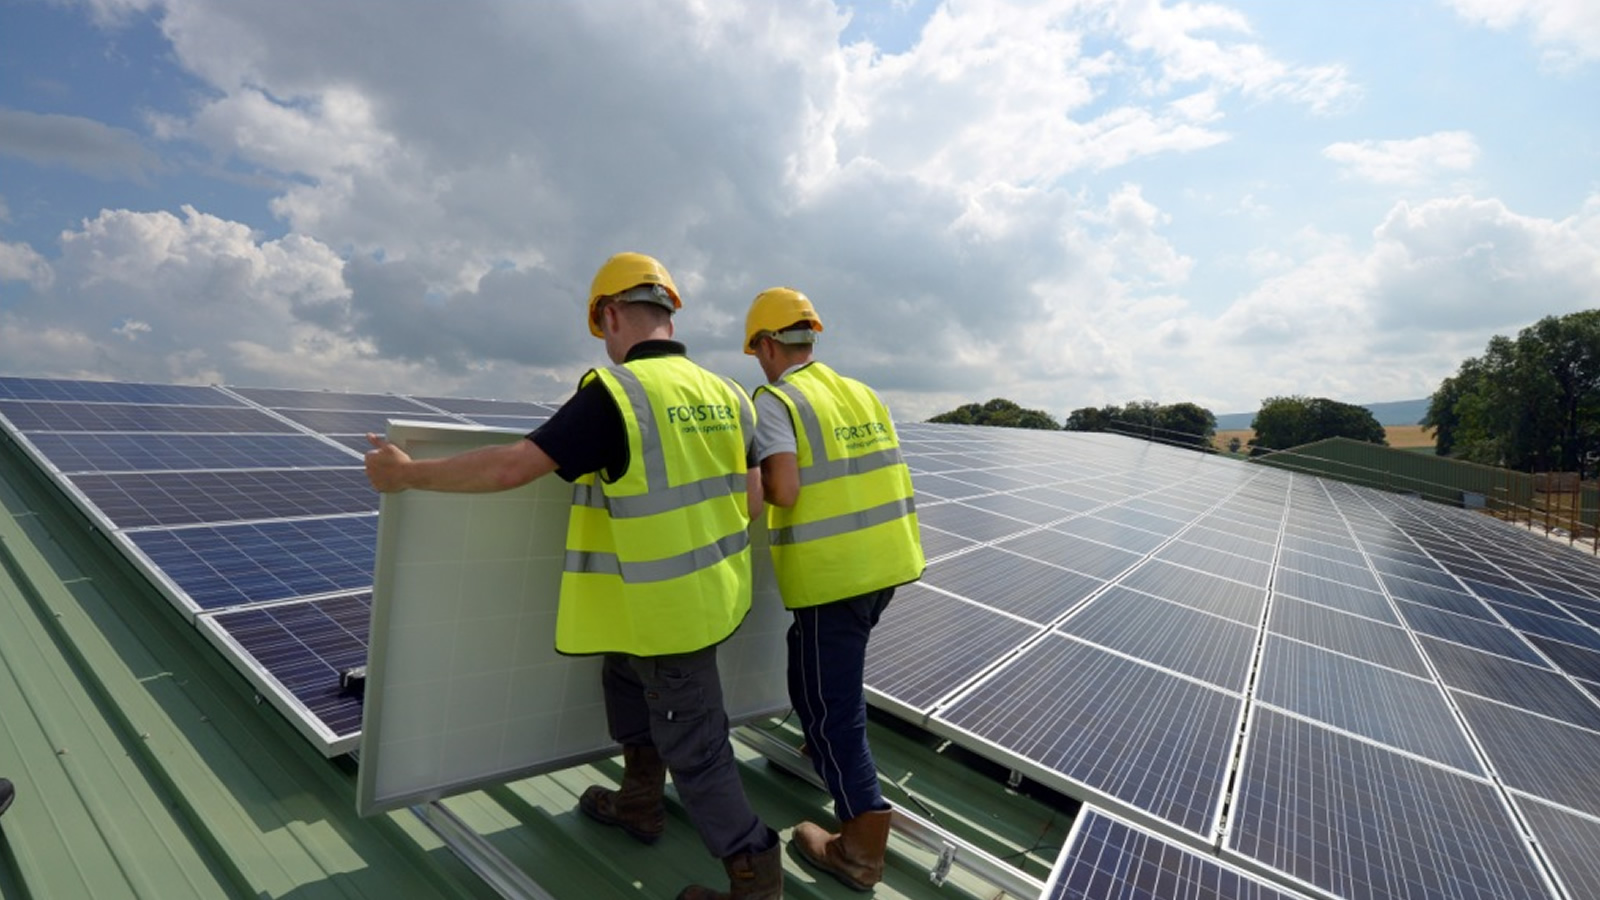 <h4>Stand Up For Solar</h4><h5>We're working to defend local progress on solar.</h5><em>Solar Trade Association CC BY-SA 2.0</em>